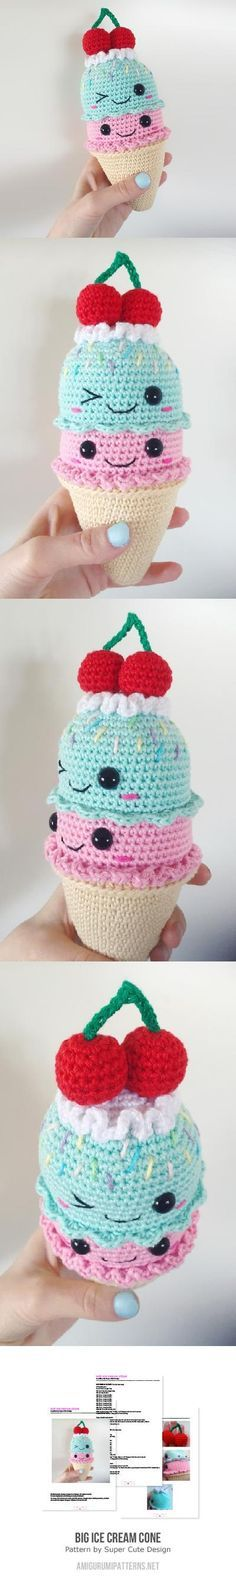 Big Ice Cream Cone Amigurumi Pattern~ (Nova asked for the white bunny ice cream cone, and Zephyr wants a popsicle)